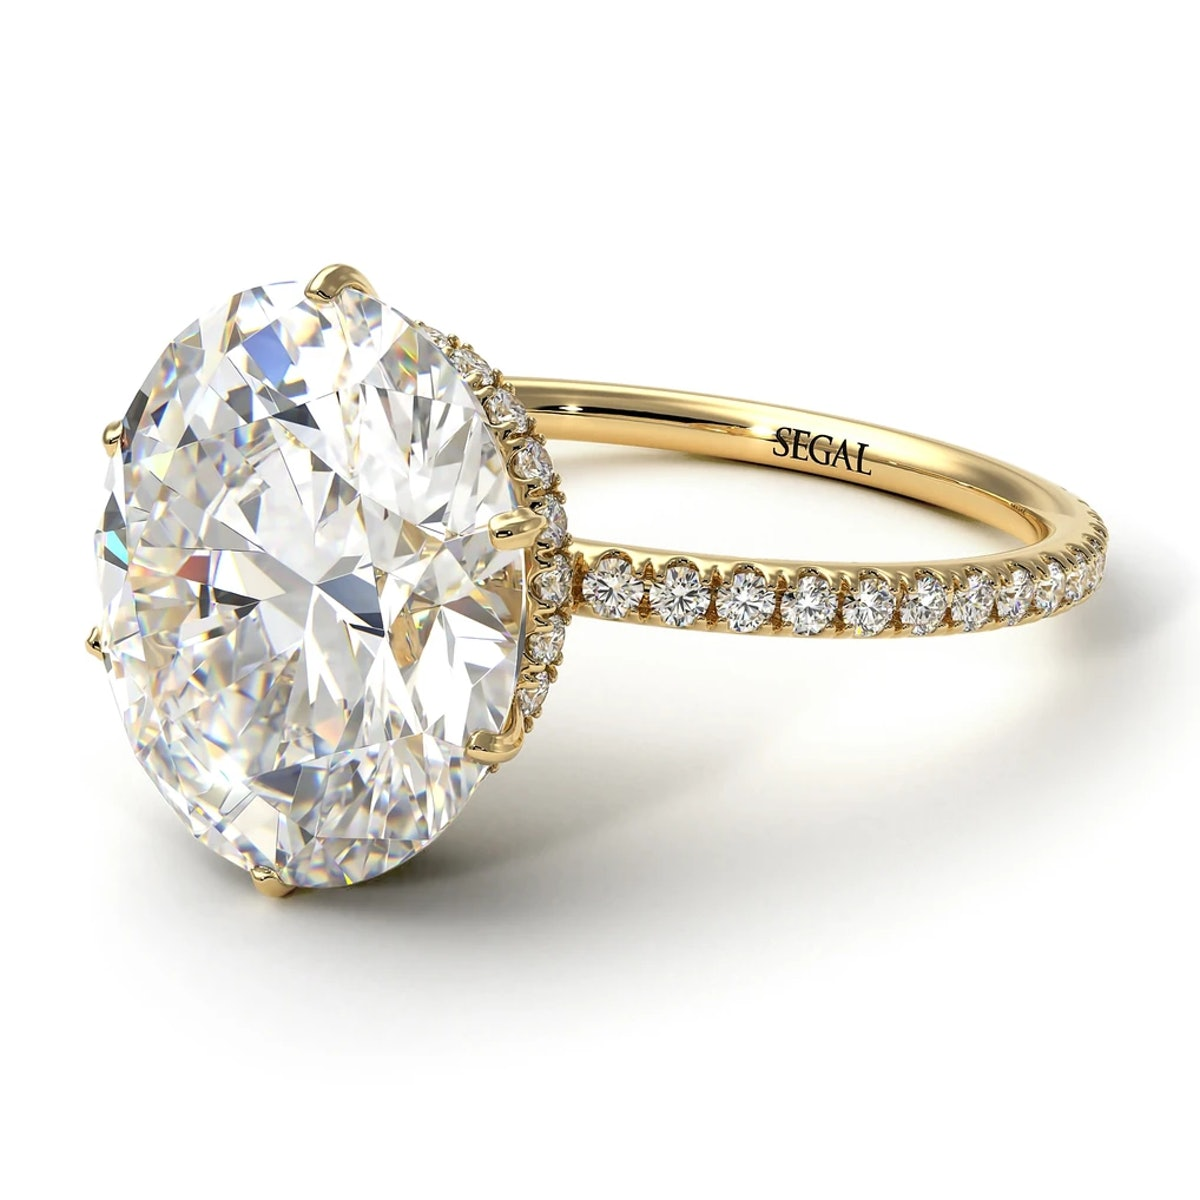 SEGAL Jewelry's hidden halo oval diamond engagement ring.